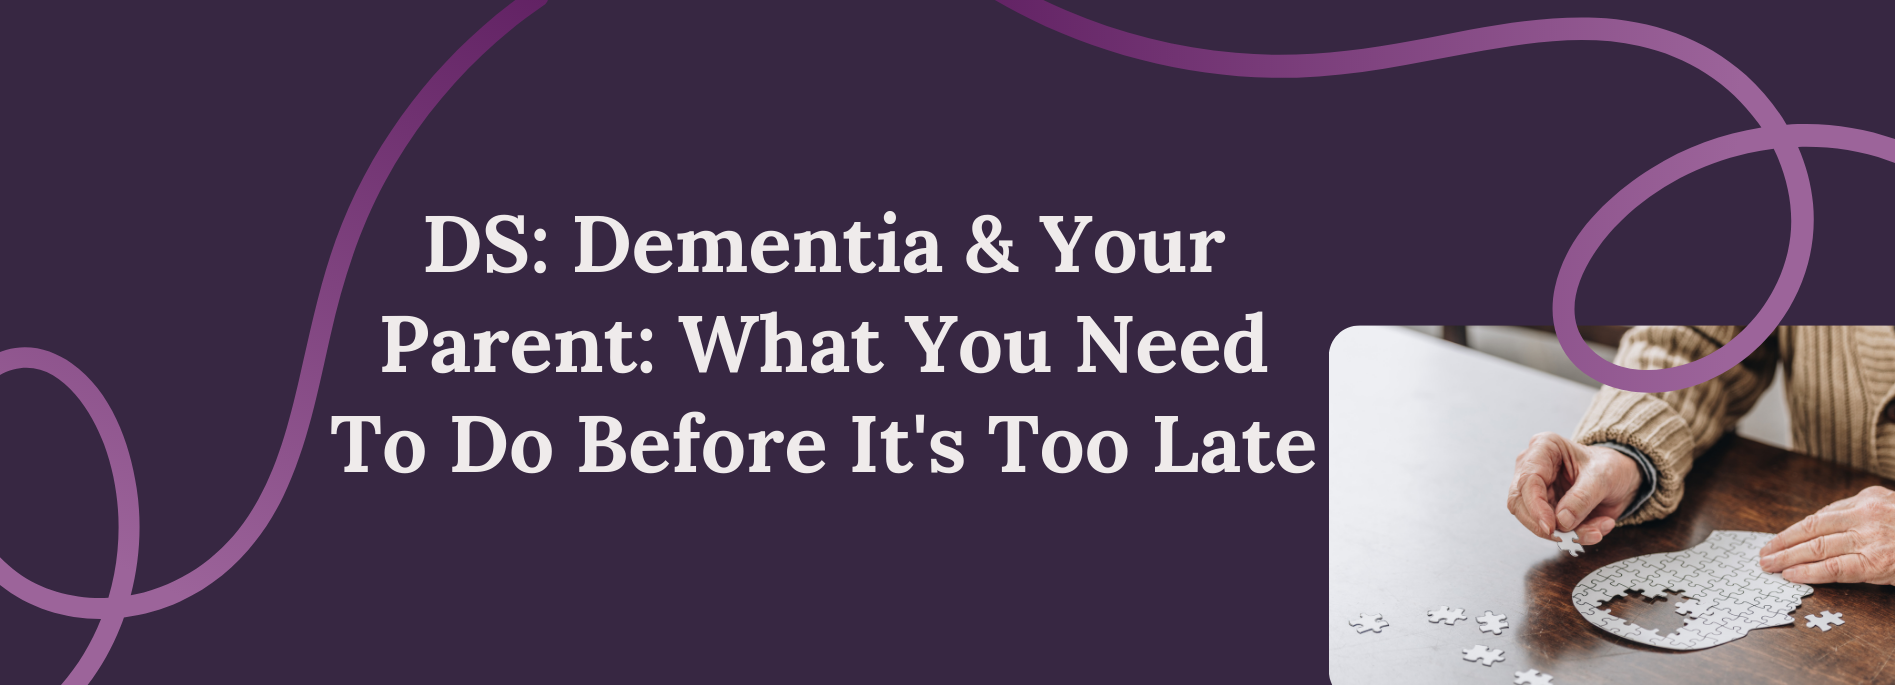 Dementia & Your Parent: What You Need To Do Before It's Too Late